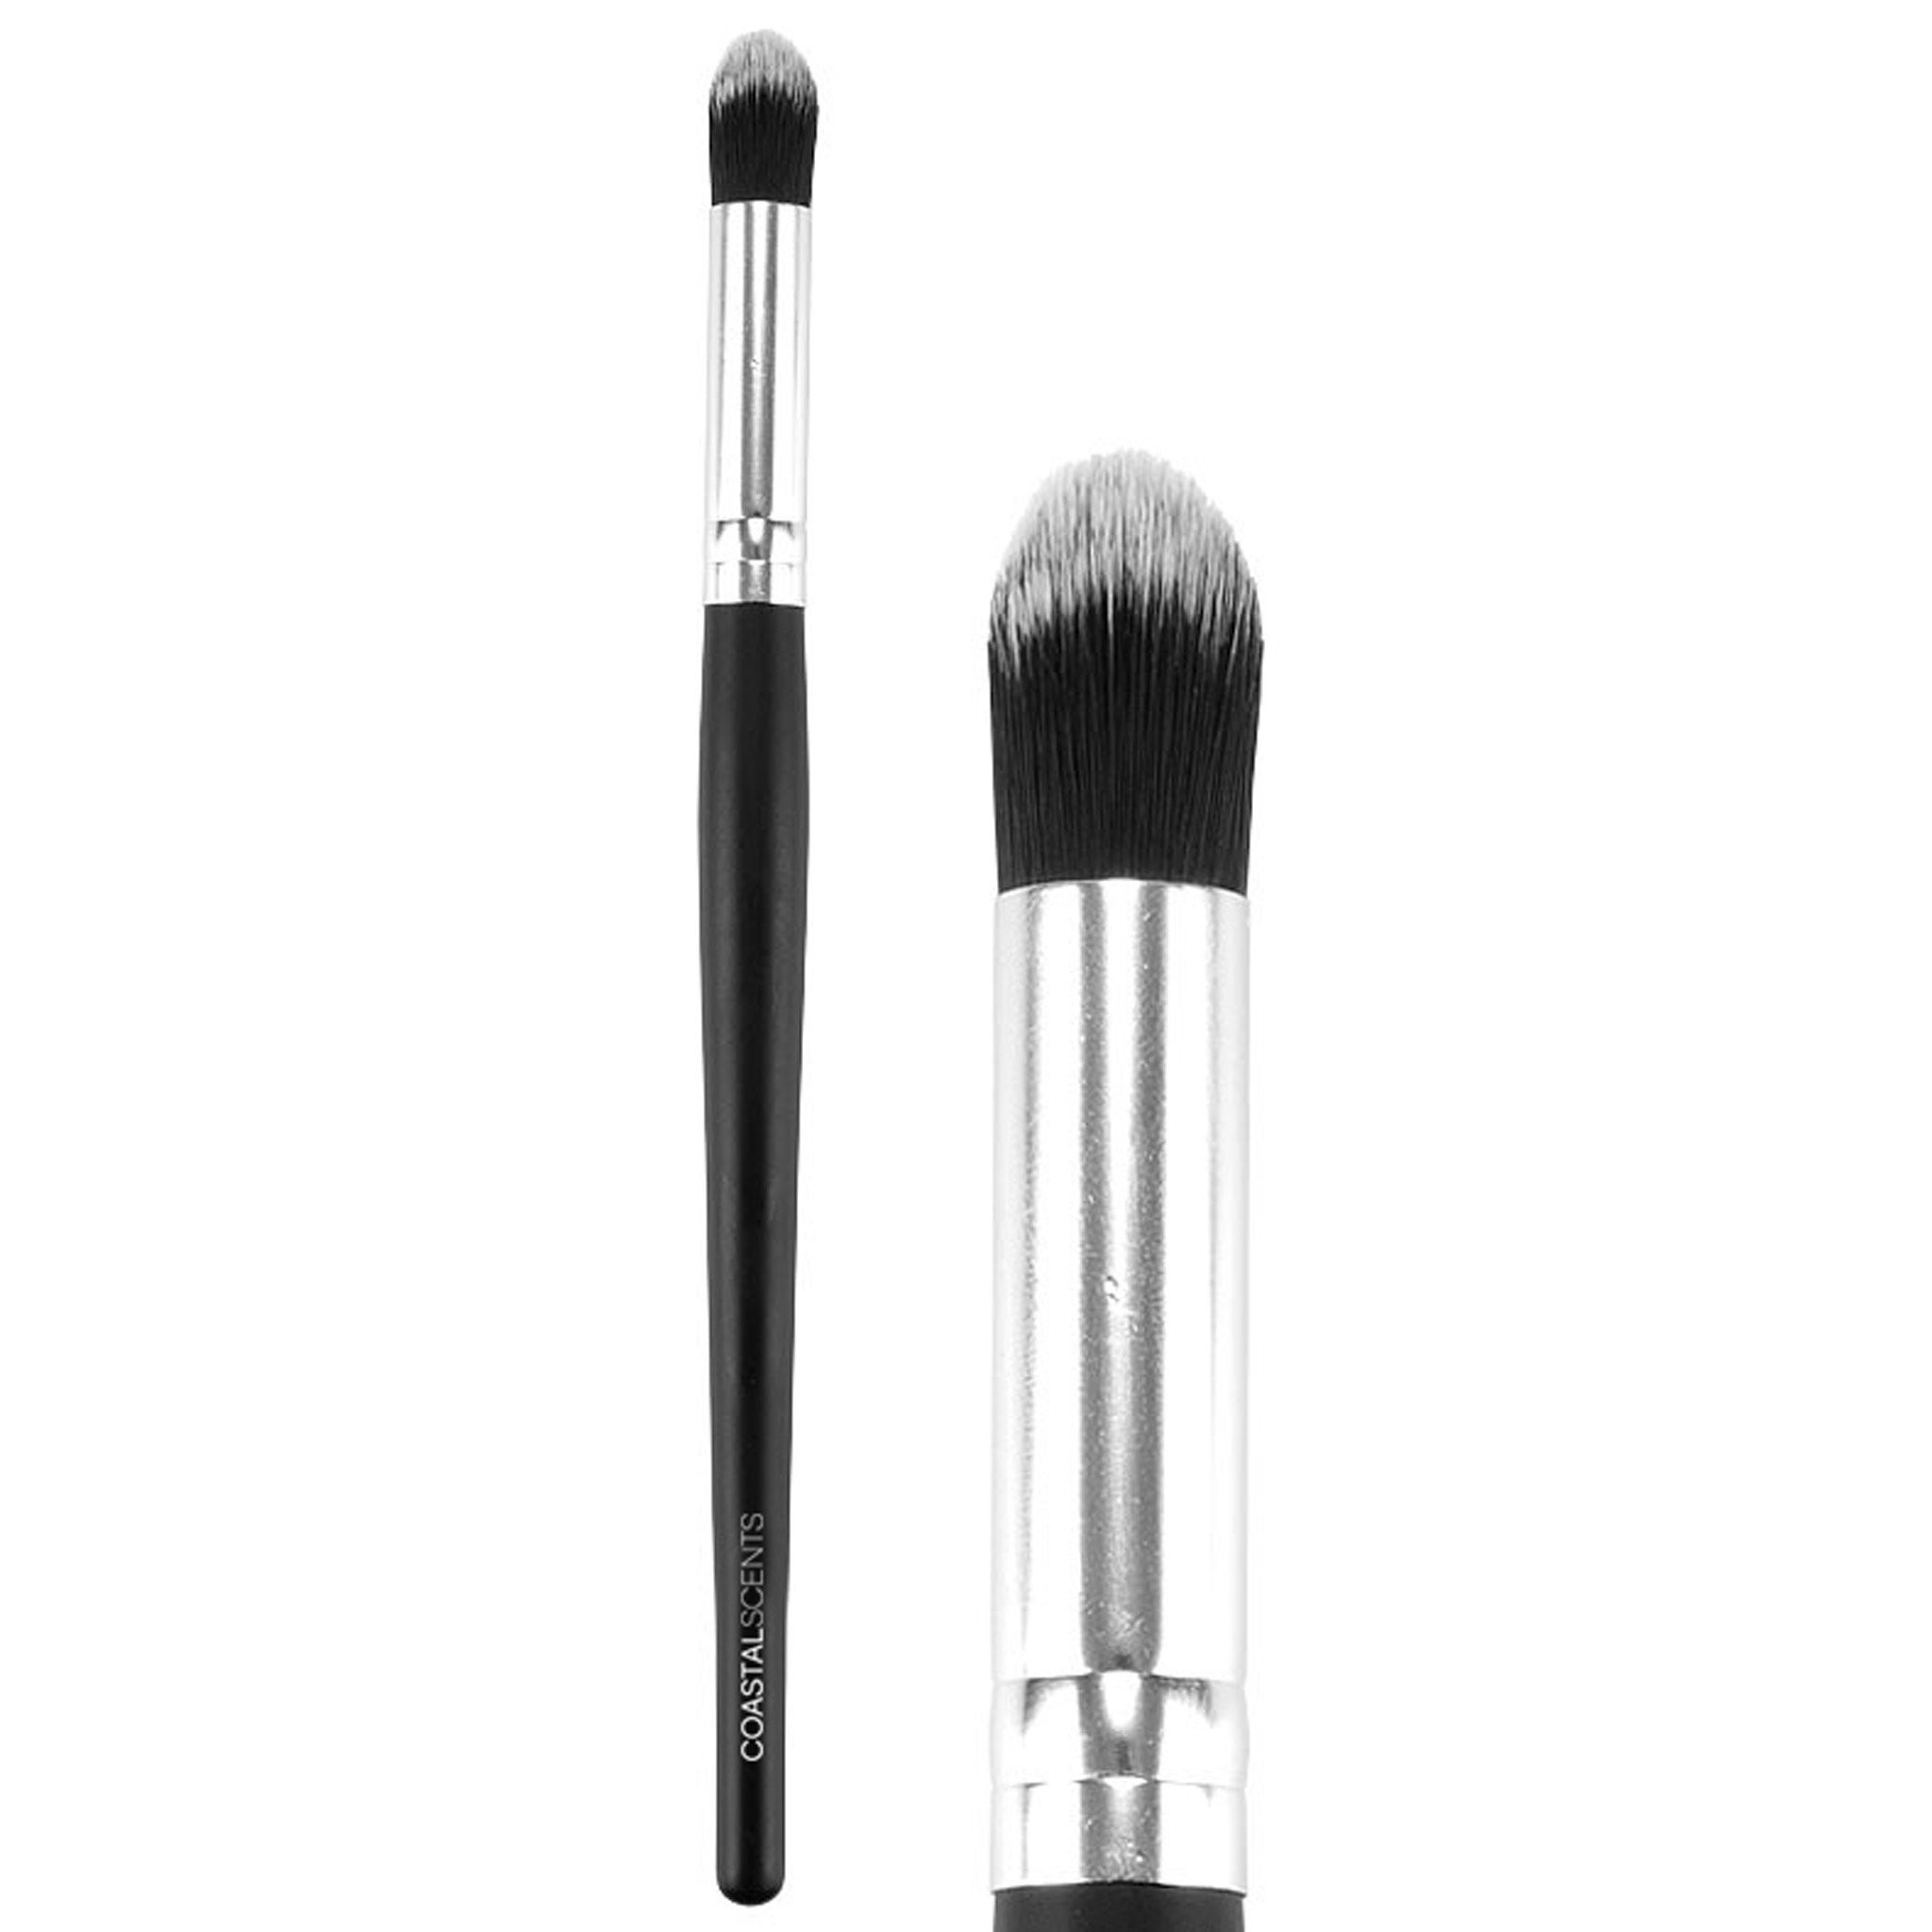 Abgerundeter Concealer-Pinsel - Classic Pointed Precision Synthetic Brush